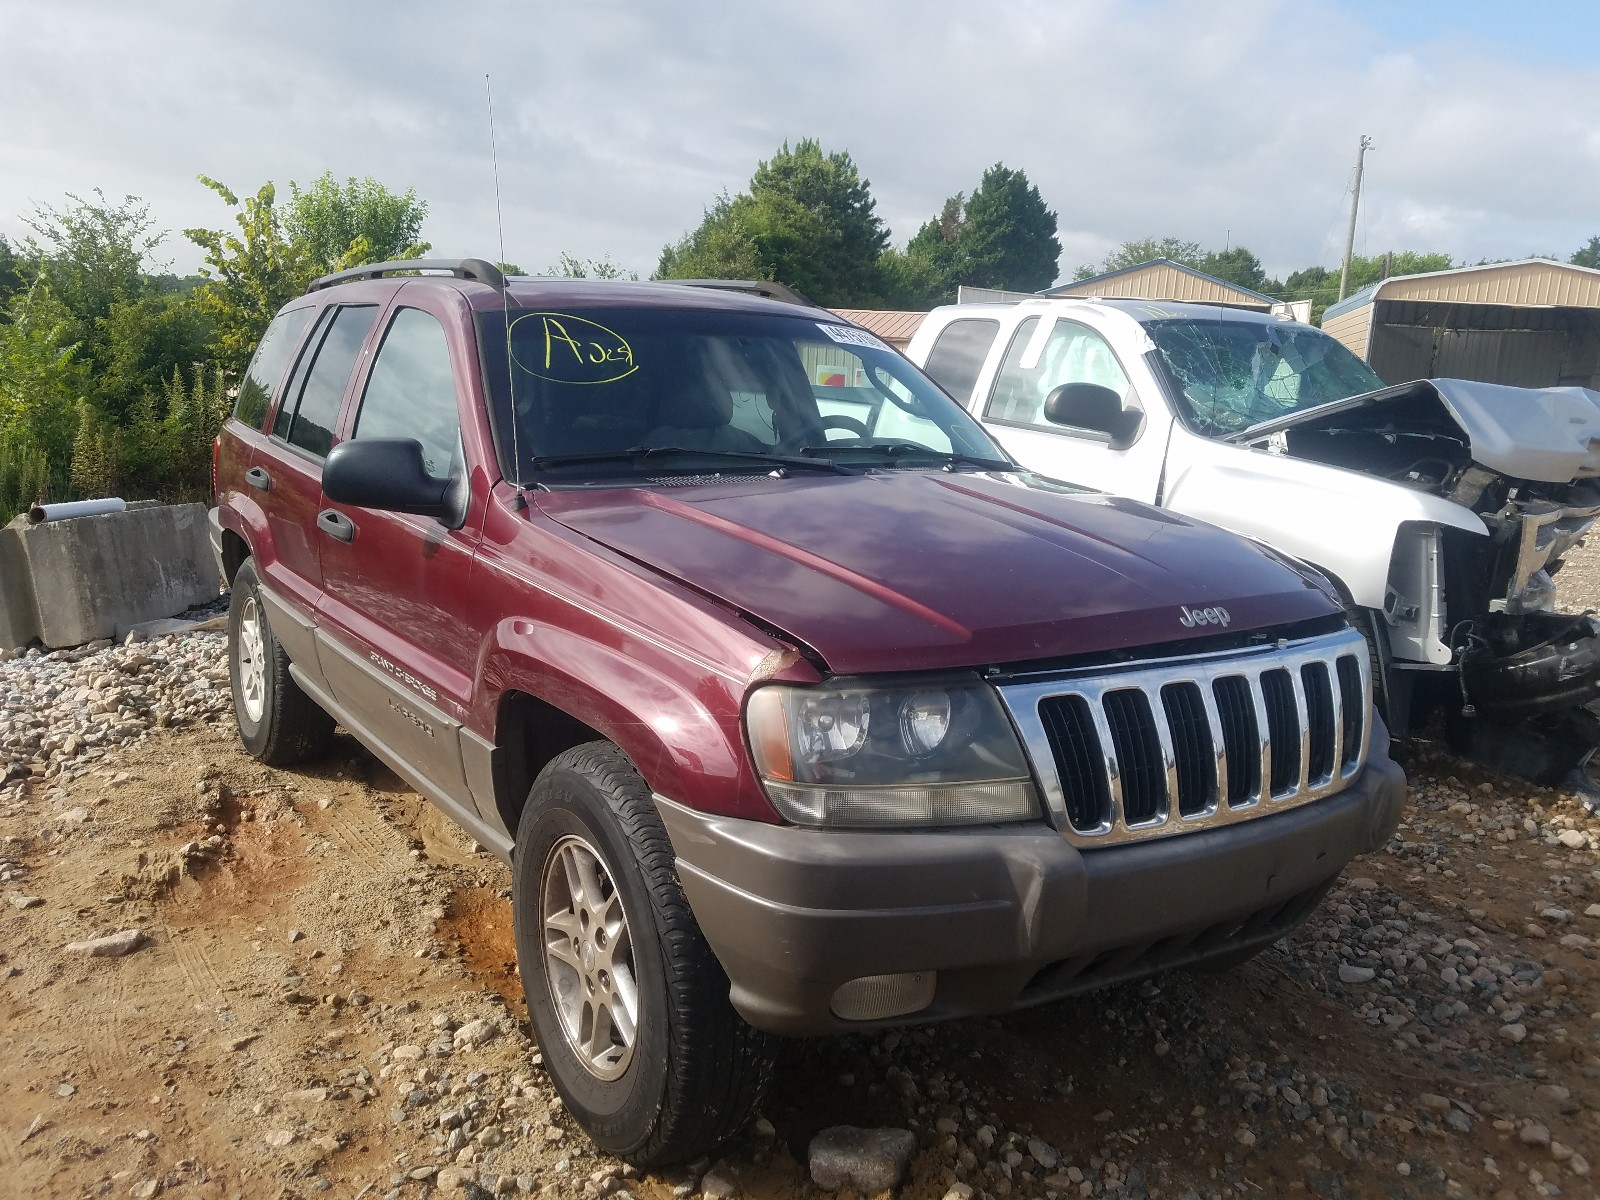 2003 jeep grand cherokee for sale at copart china grove nc lot 44757960 salvagereseller com salvagereseller com